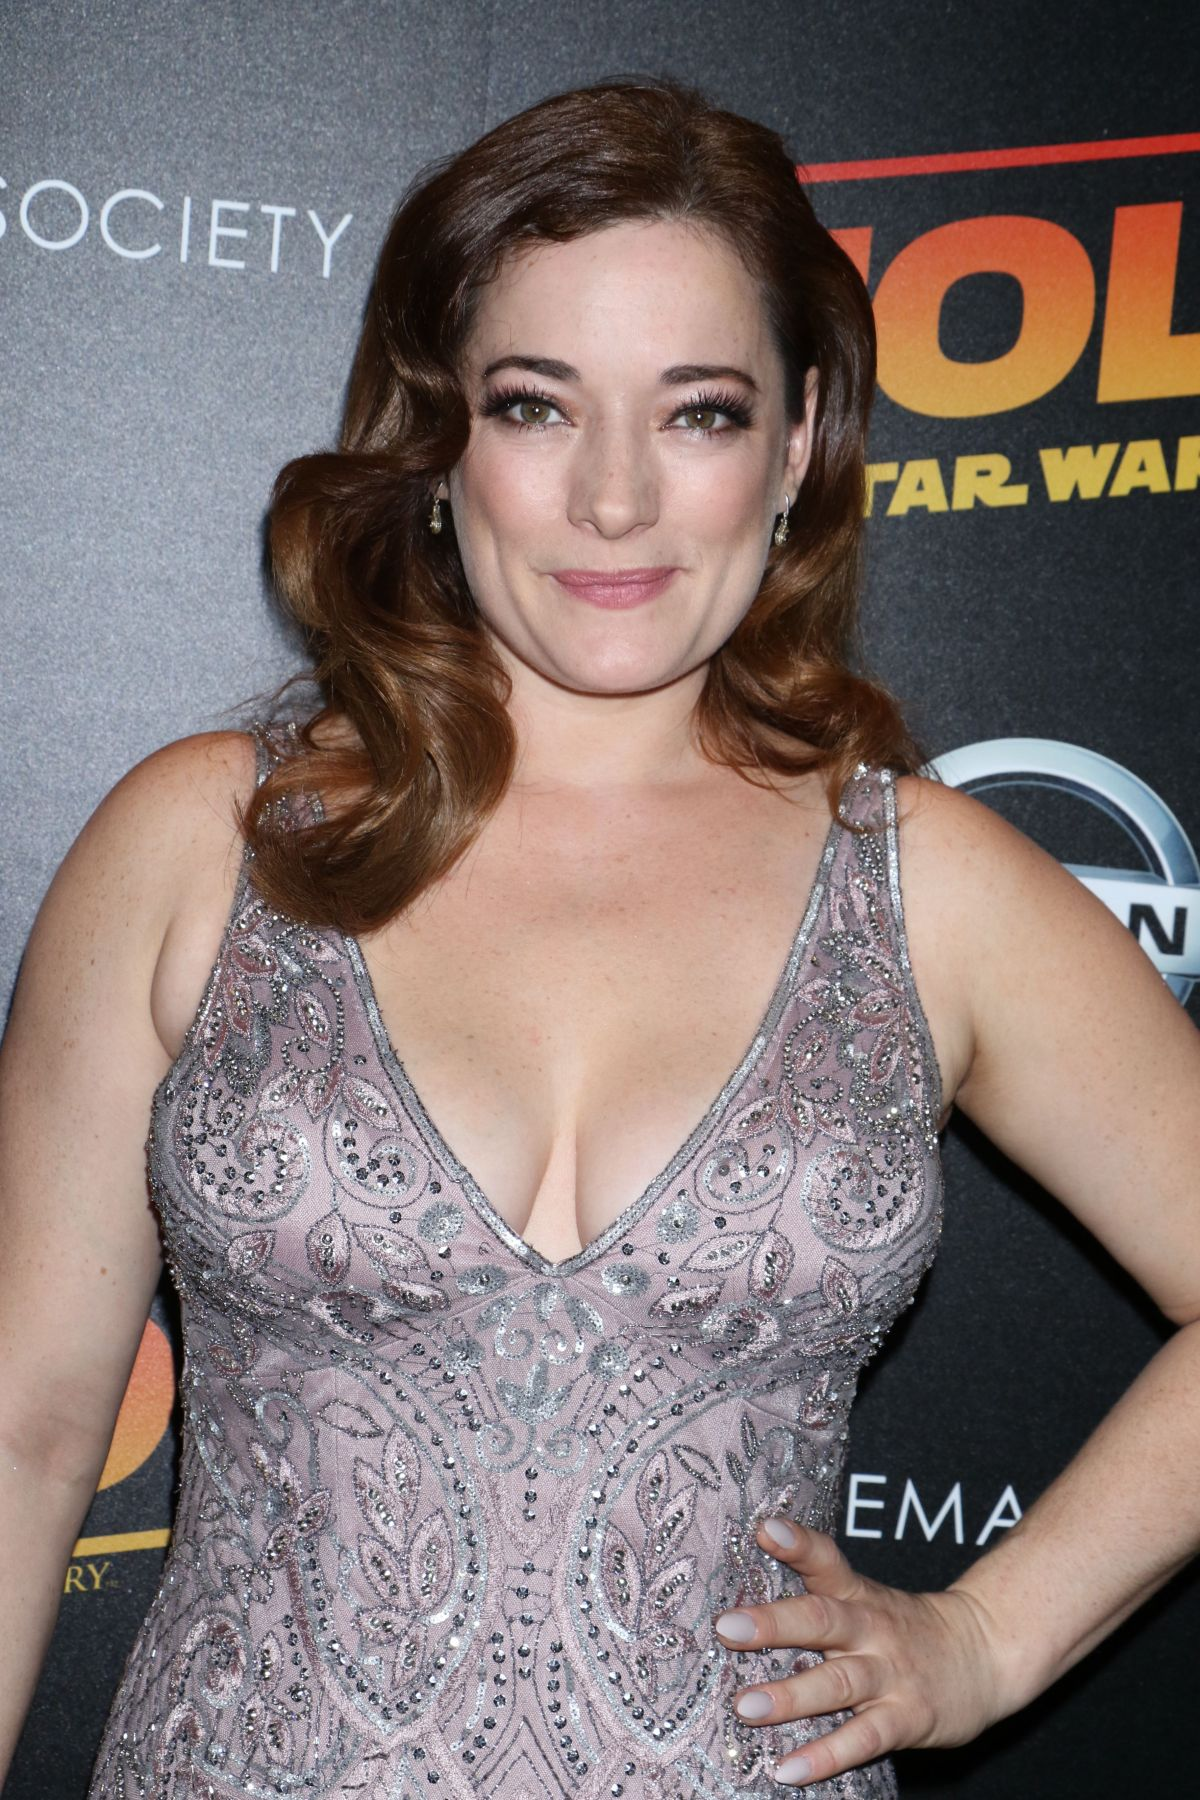 Laura Michelle Kelly naked (97 foto and video), Topless, Sideboobs, Twitter, swimsuit 2017